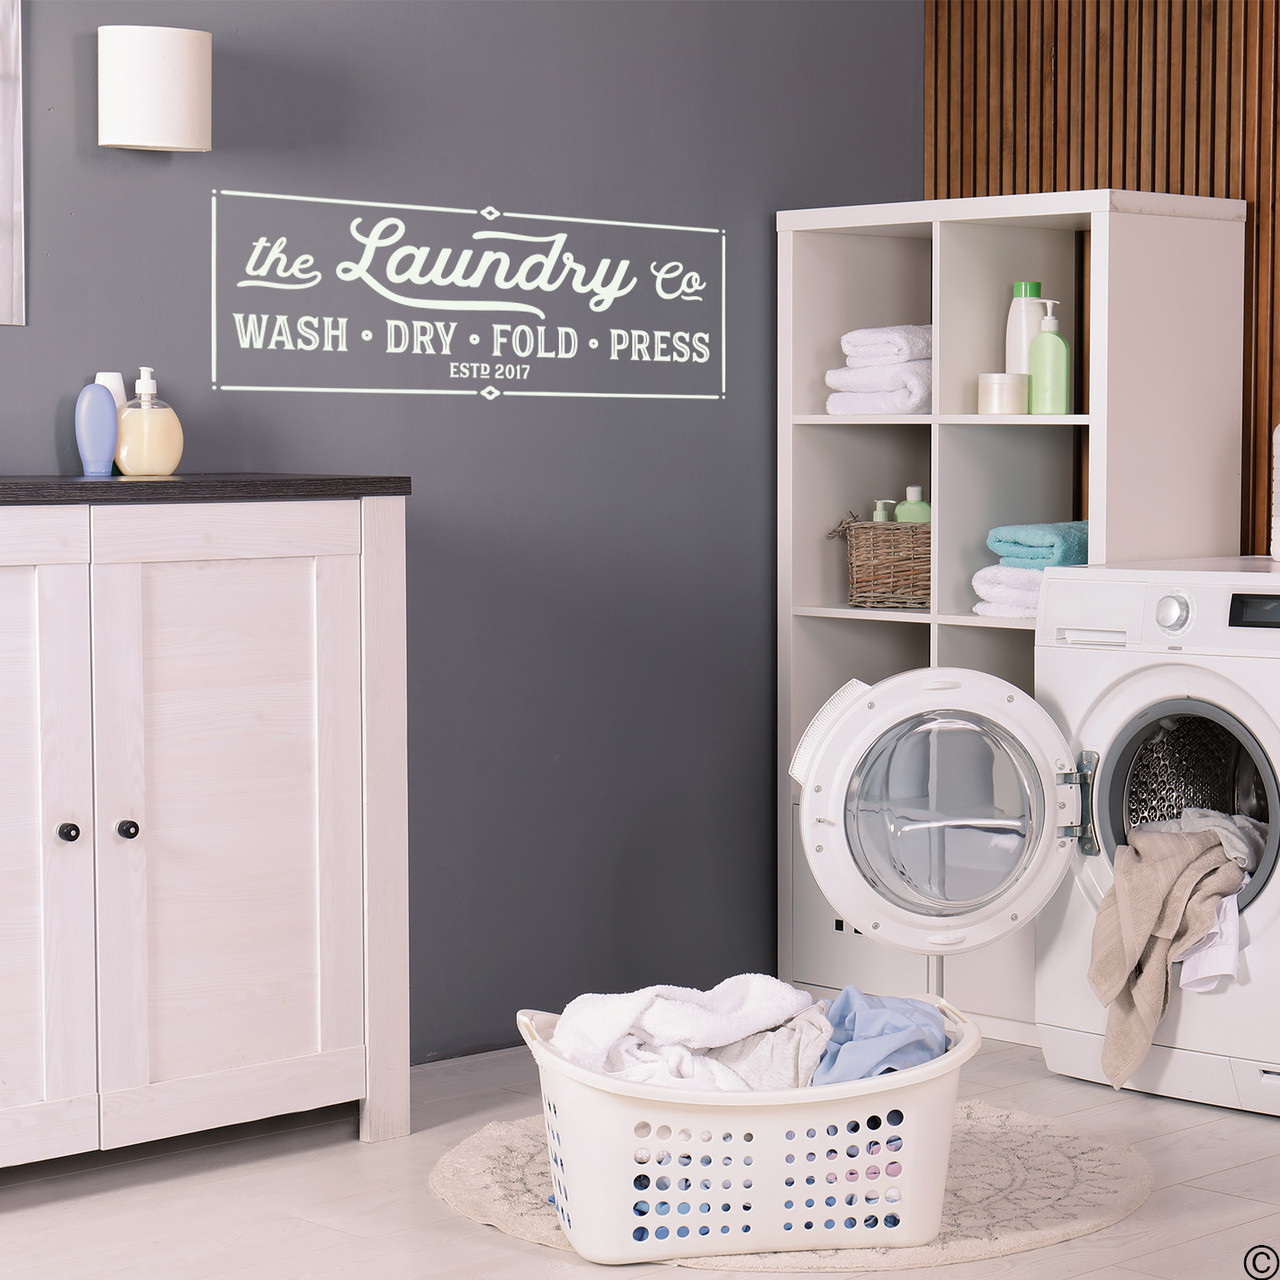 The Laundry Co Wall Decal With Personalized Established Date